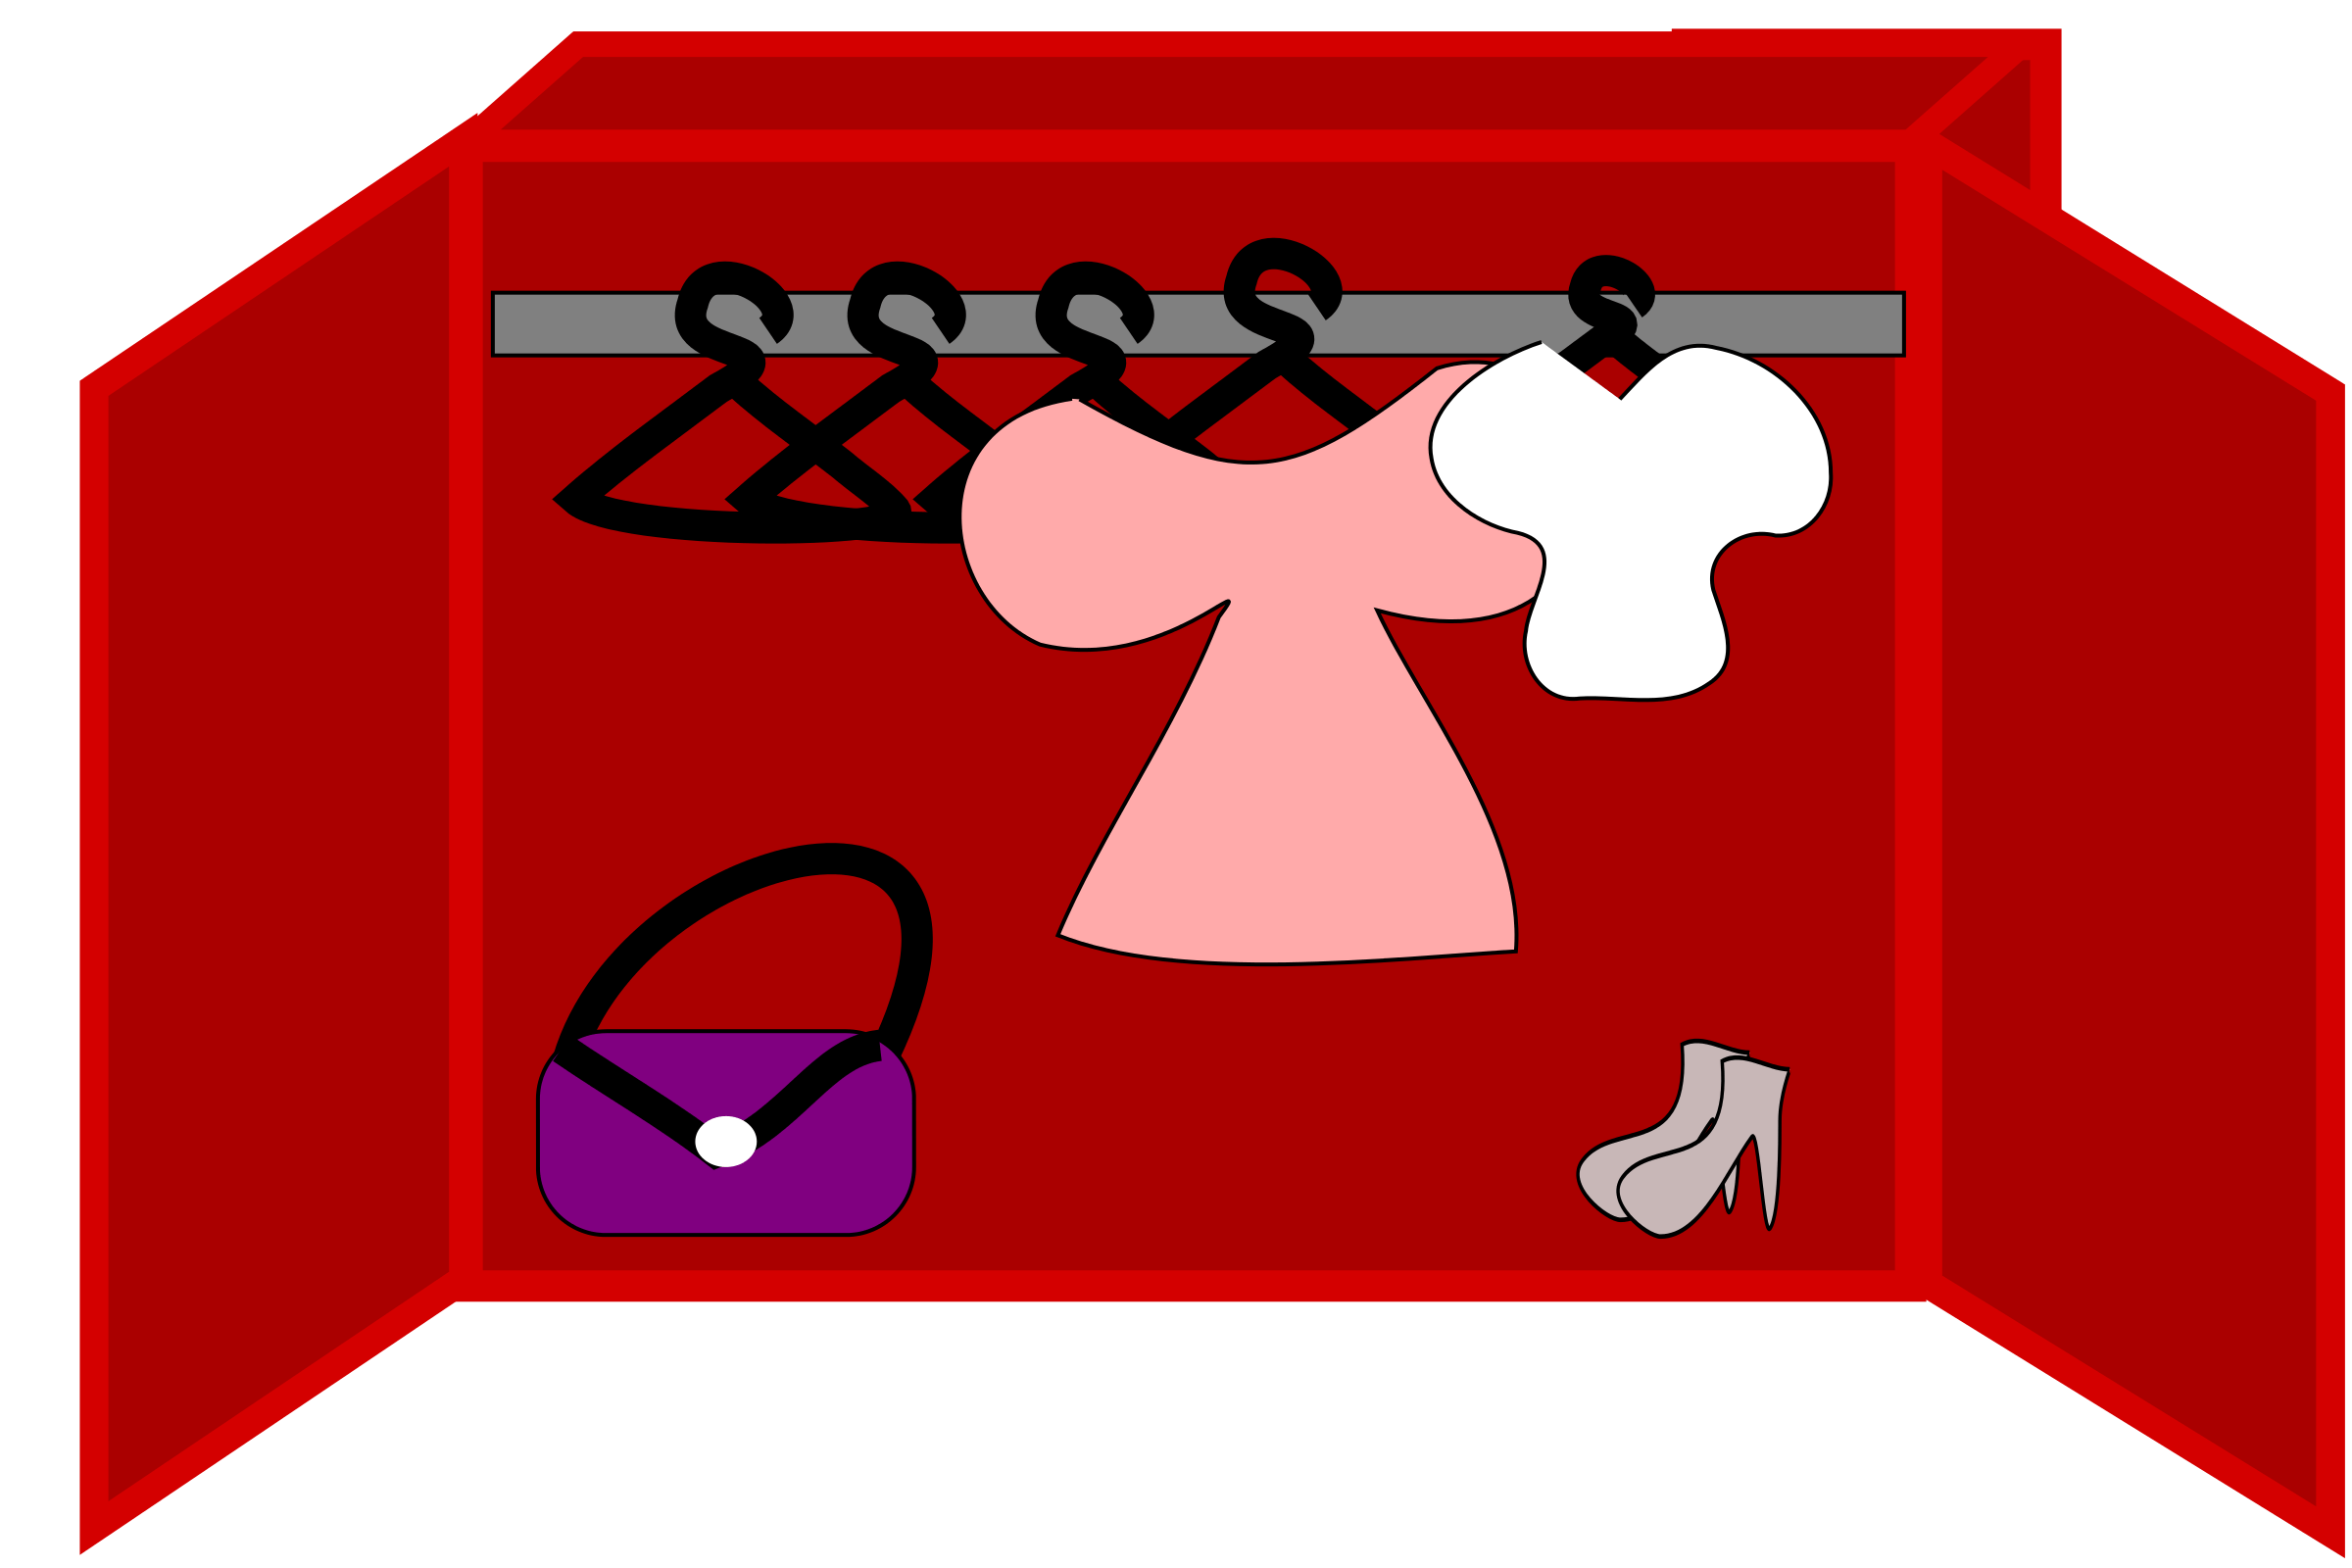 Door clipart closet door. Alternative design clip art